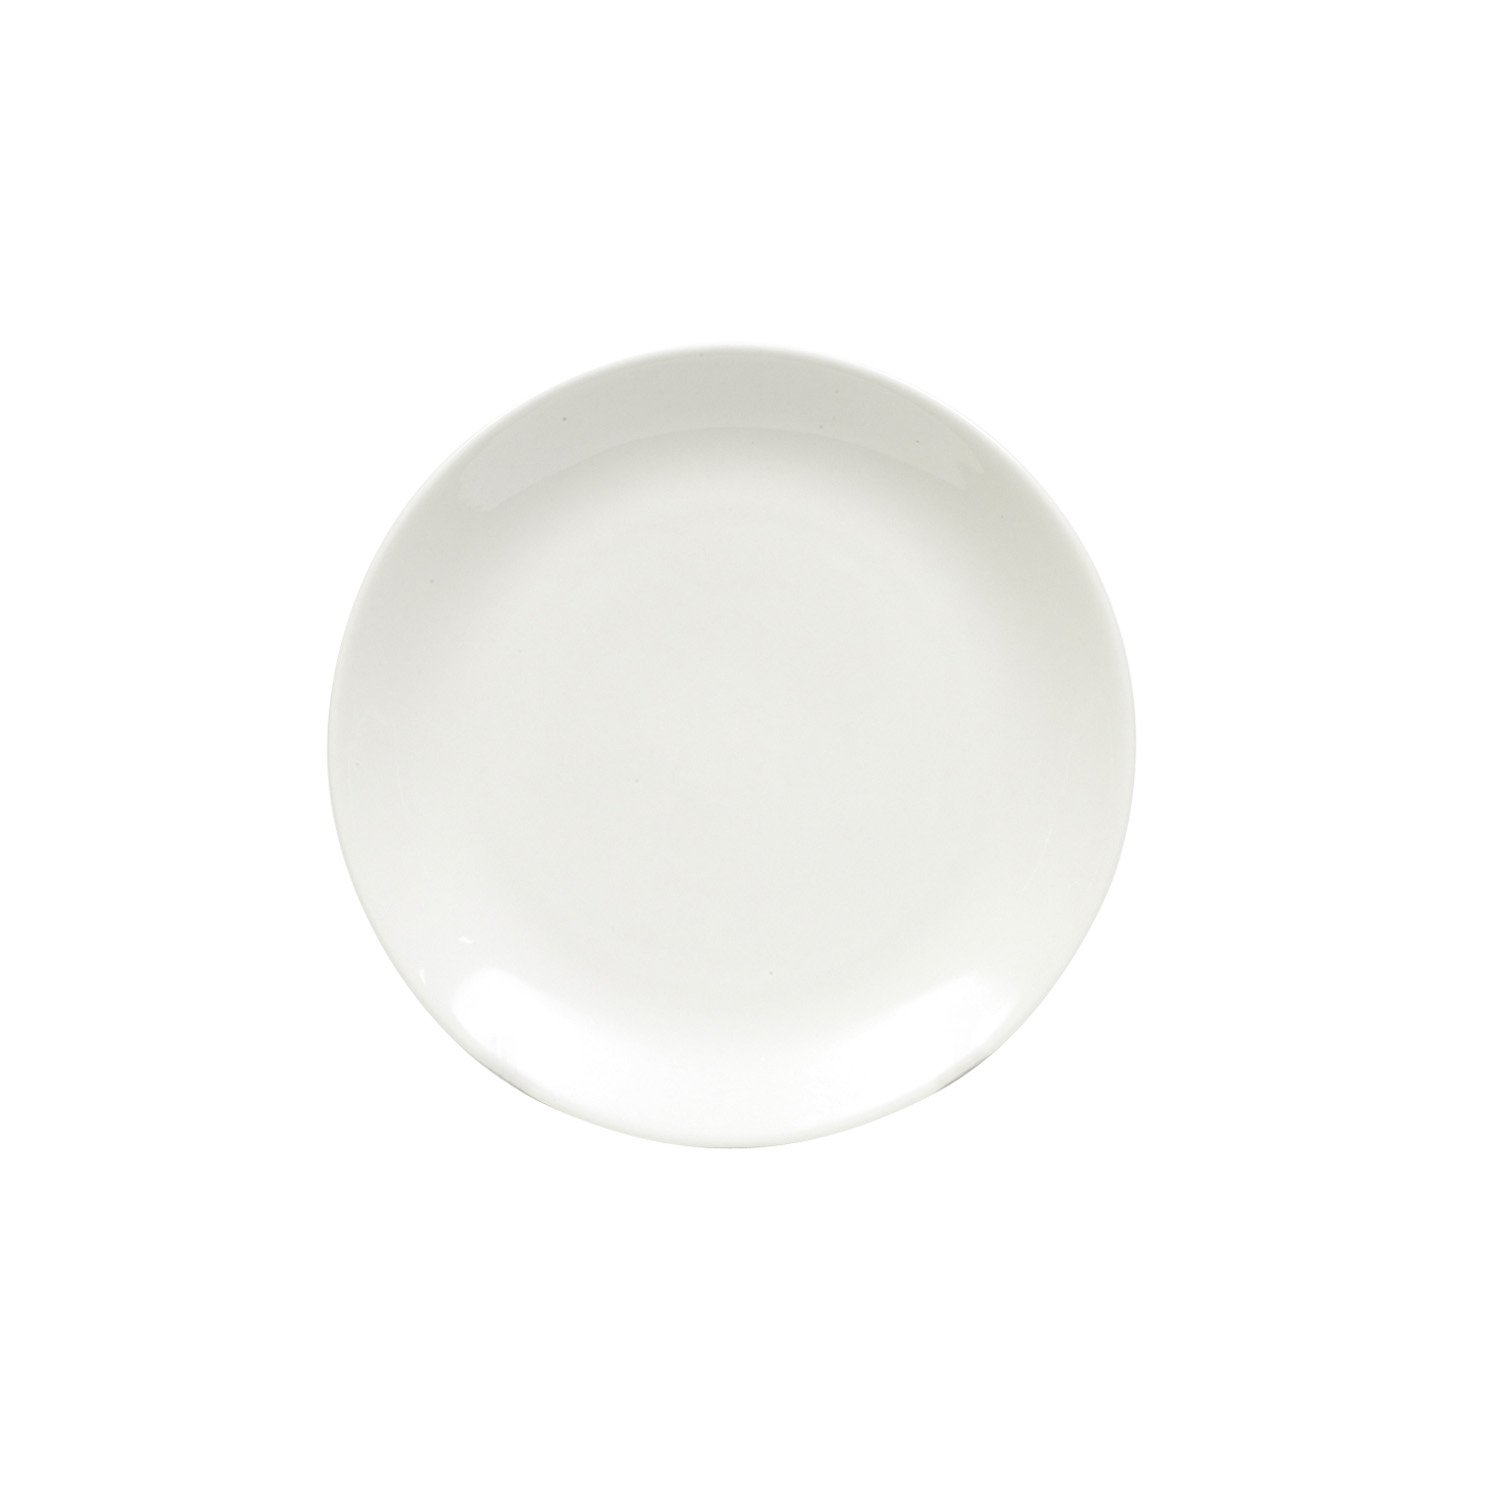 Maxwell and Williams Basics Coupe Side Plate, White Fitz and Floyd P7019